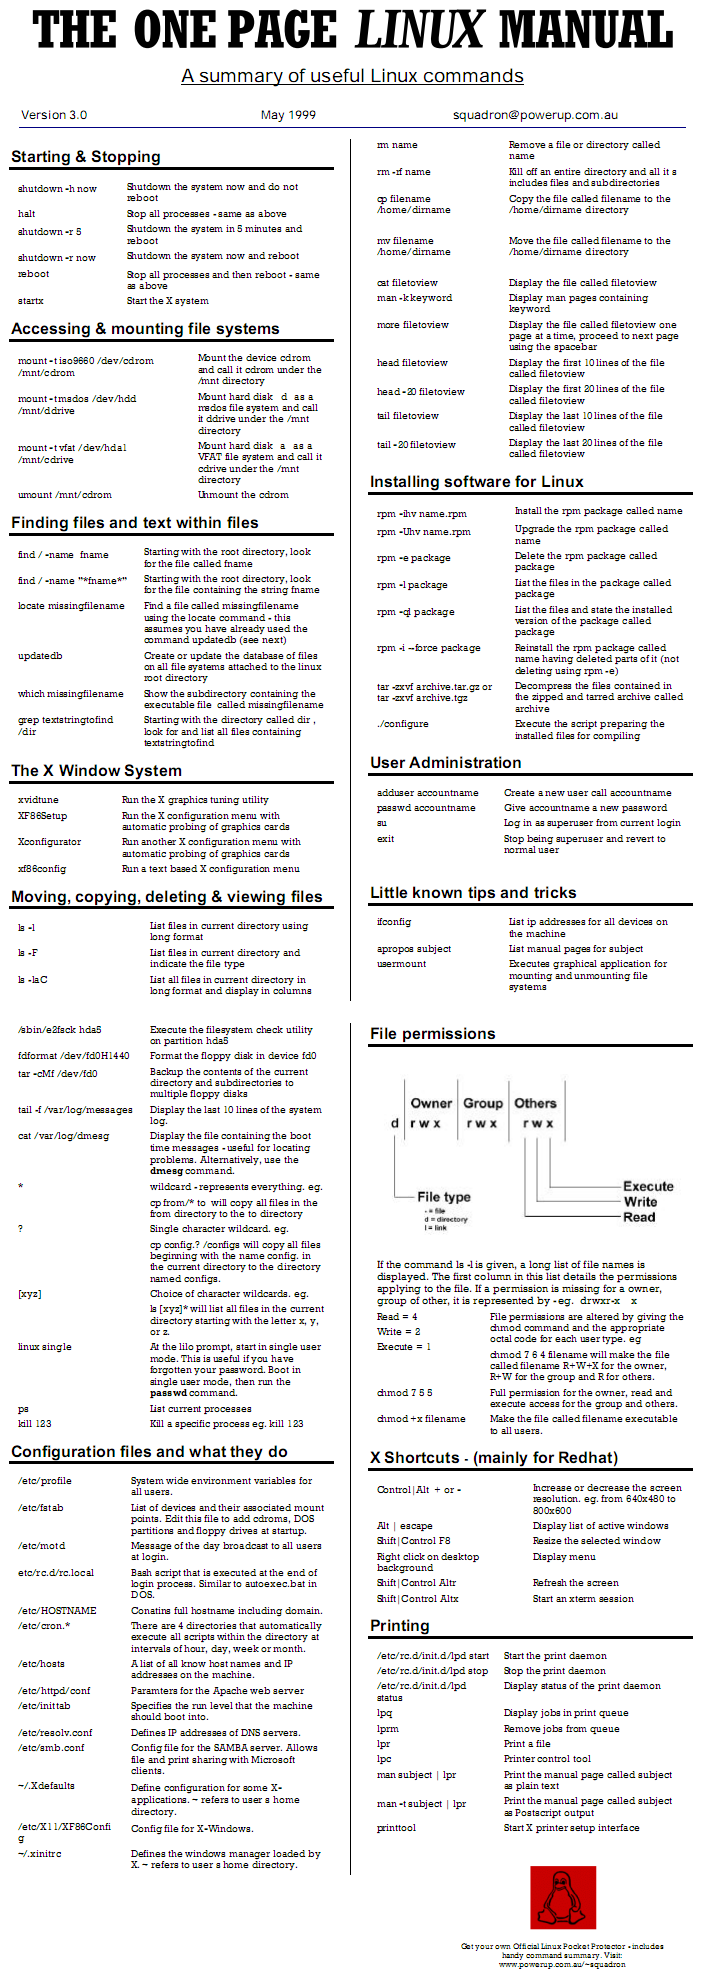 Linux - The One Page Linux Manual | I could be an IT gal